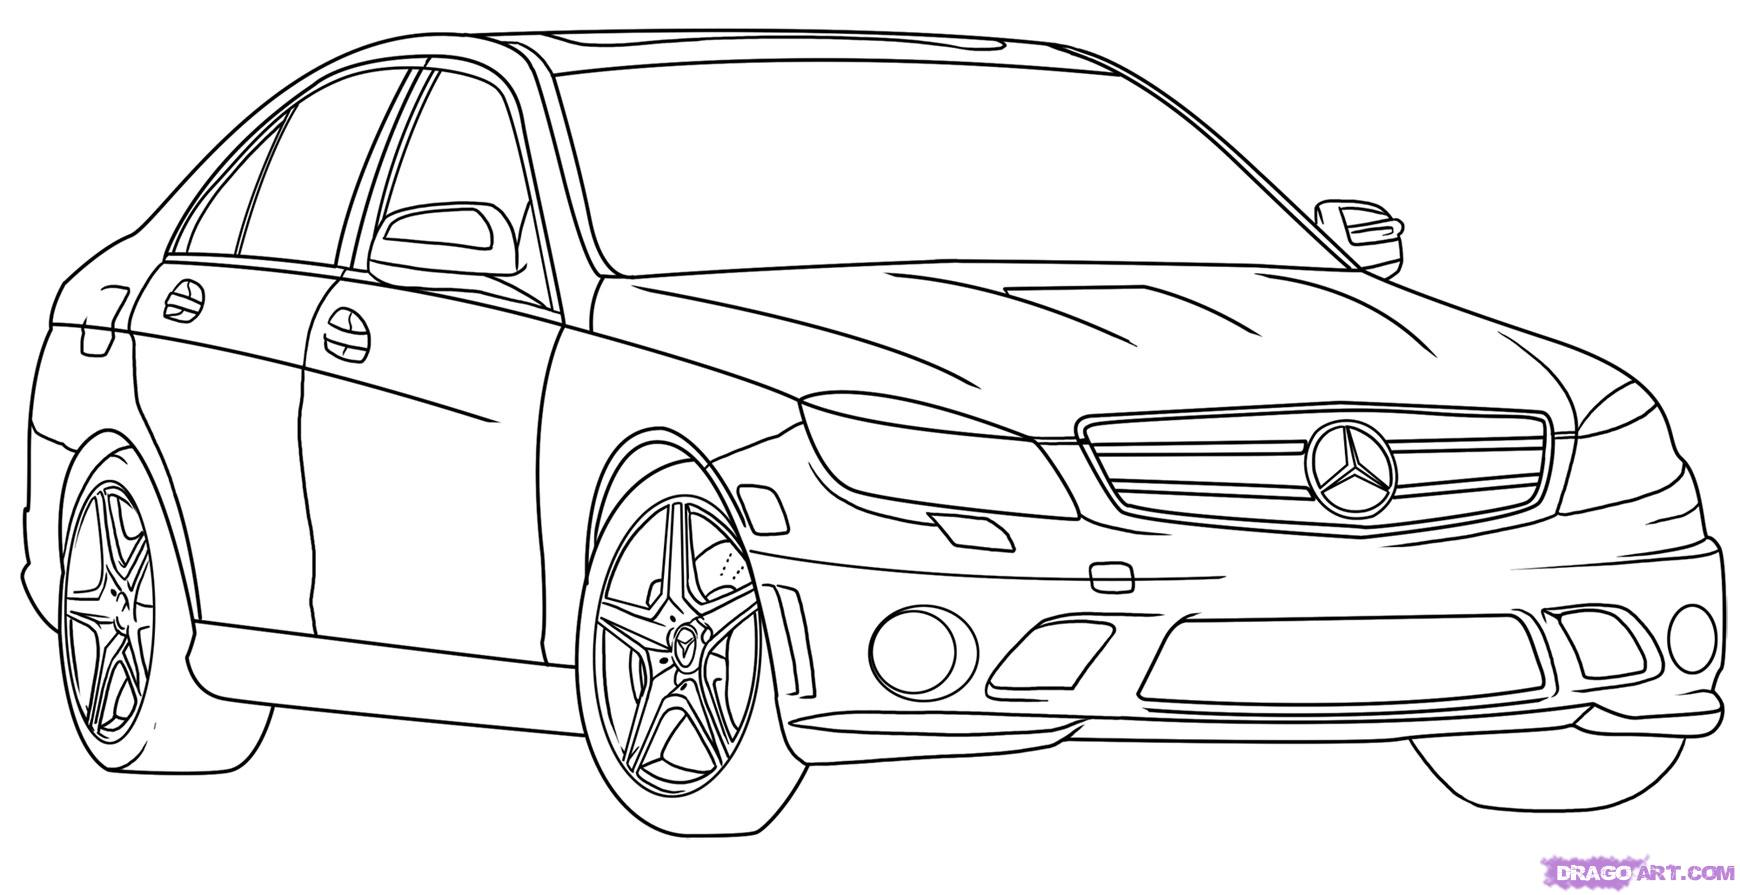 Free Drawing Car Download Free Clip Art Free Clip Art On